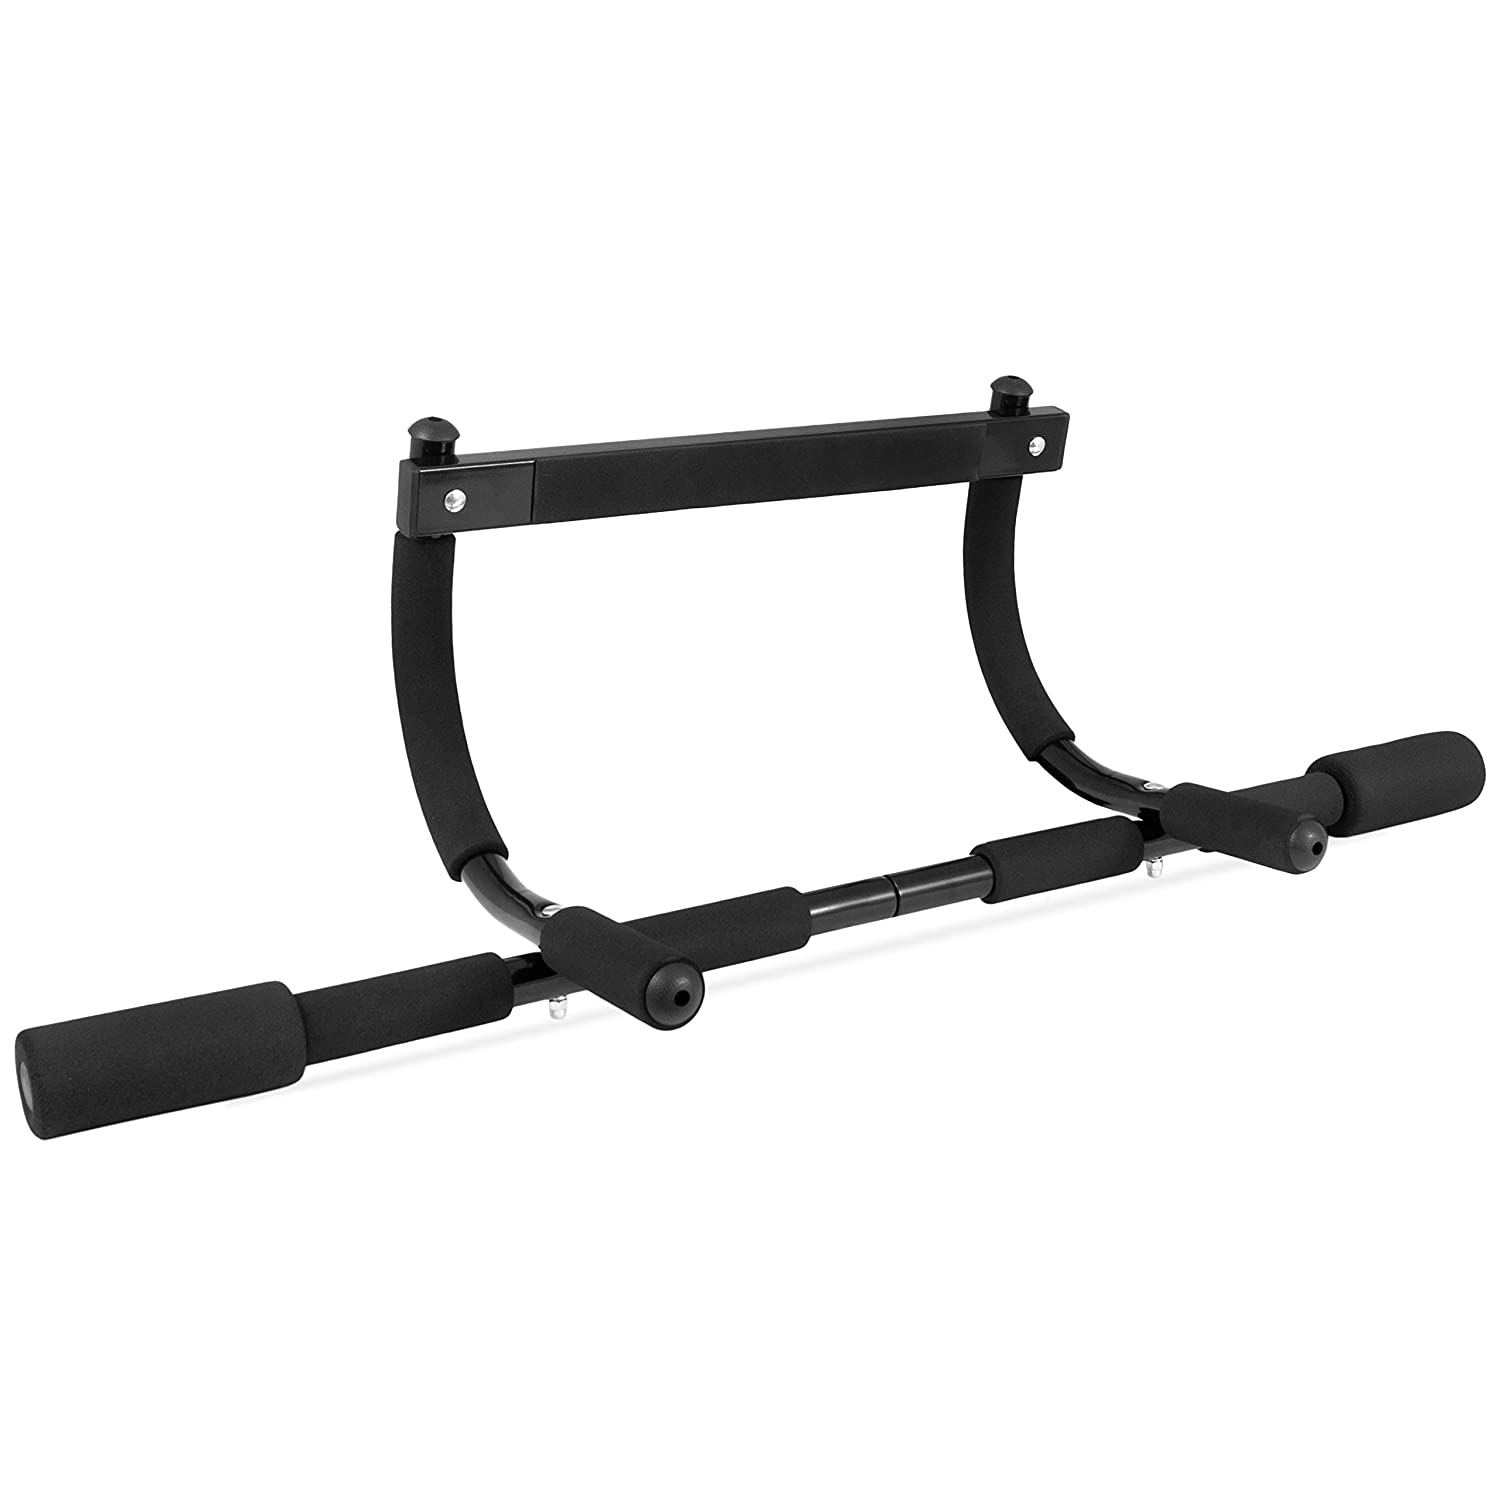 "ProsourceFit Multi-Grip Lite Pull Up/Chin Up Bar, Heavy Duty Doorway Upper Body Workout Bar for Home Gyms 24""-32"""